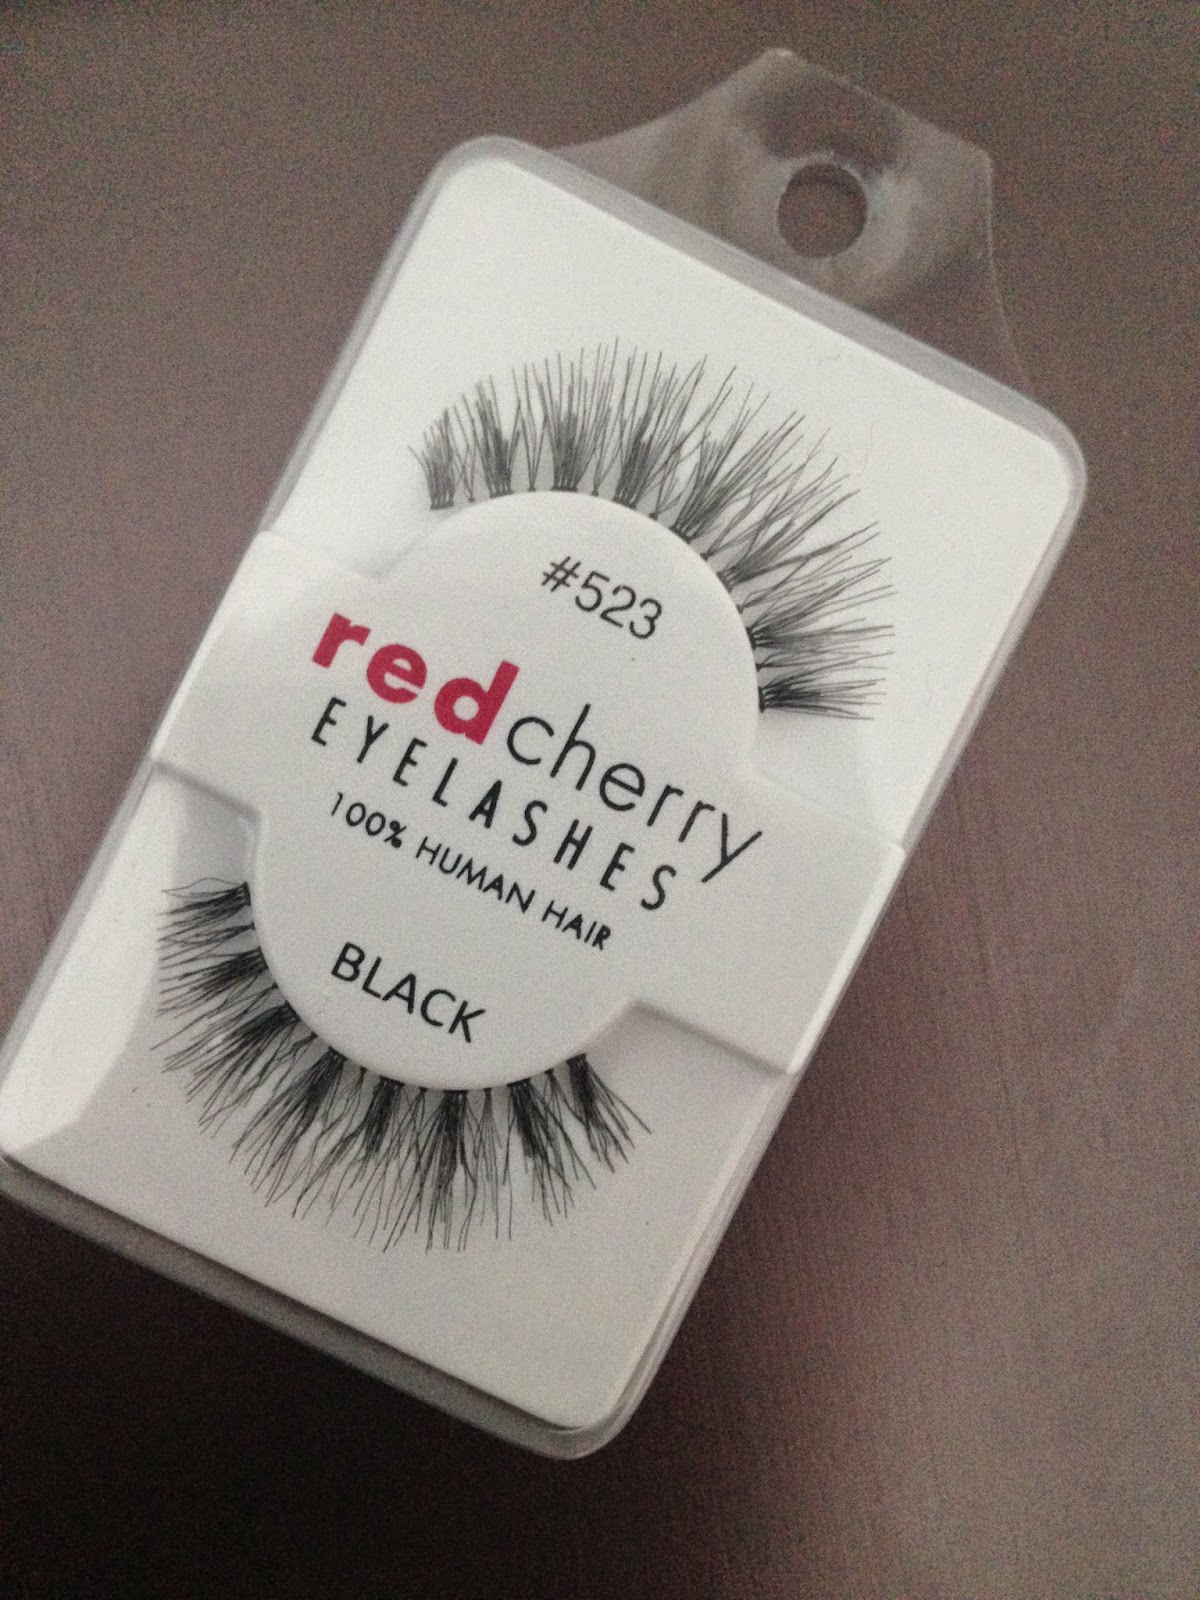 Hardly Florid Red Cherry Eyelashes My Favorite Falsies